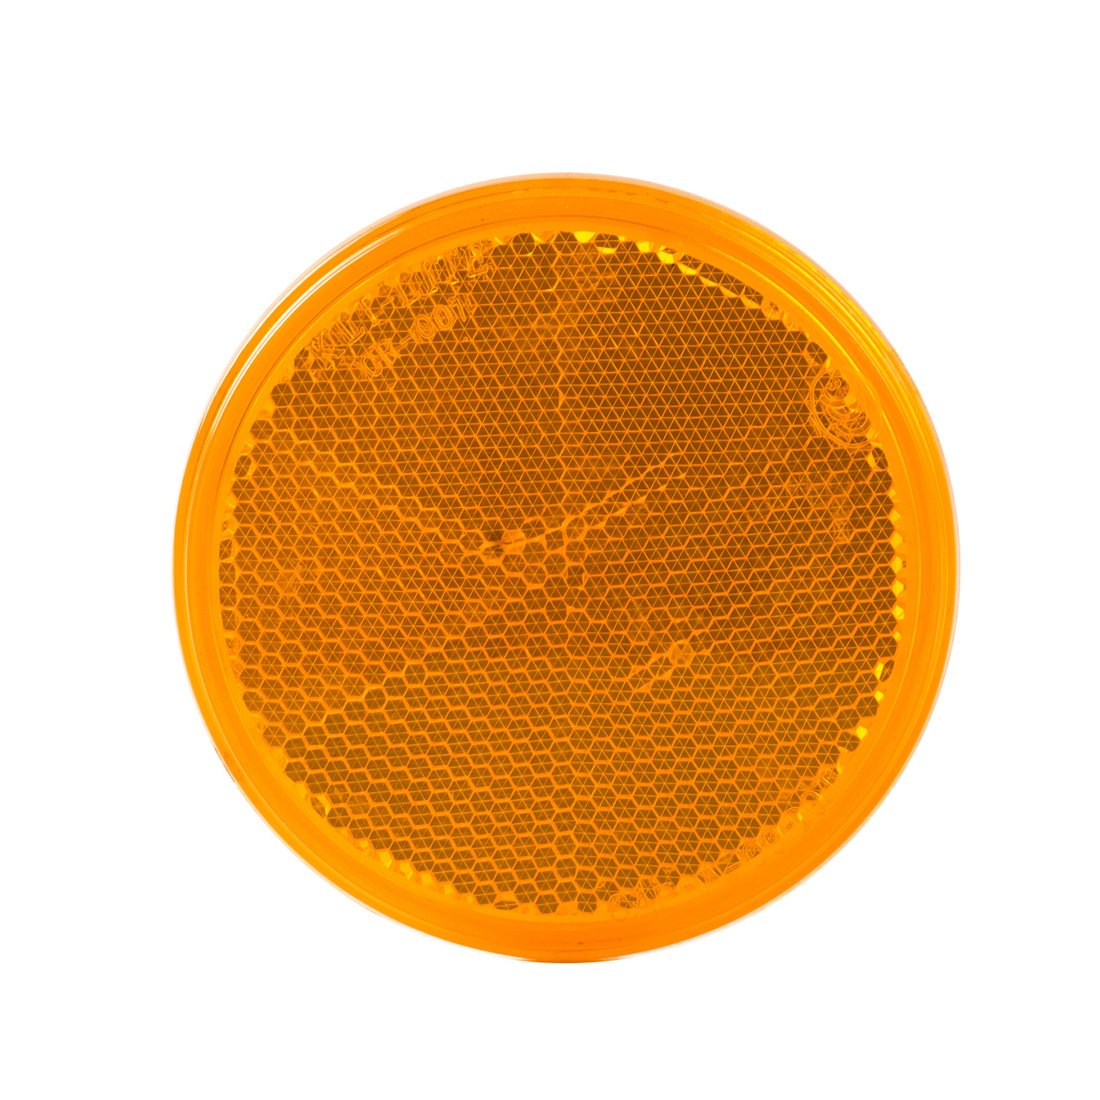 WildAuto 3.25 Inch Light Reflector for Trailers Container Trucks Buses 4PCS//Pack Amber